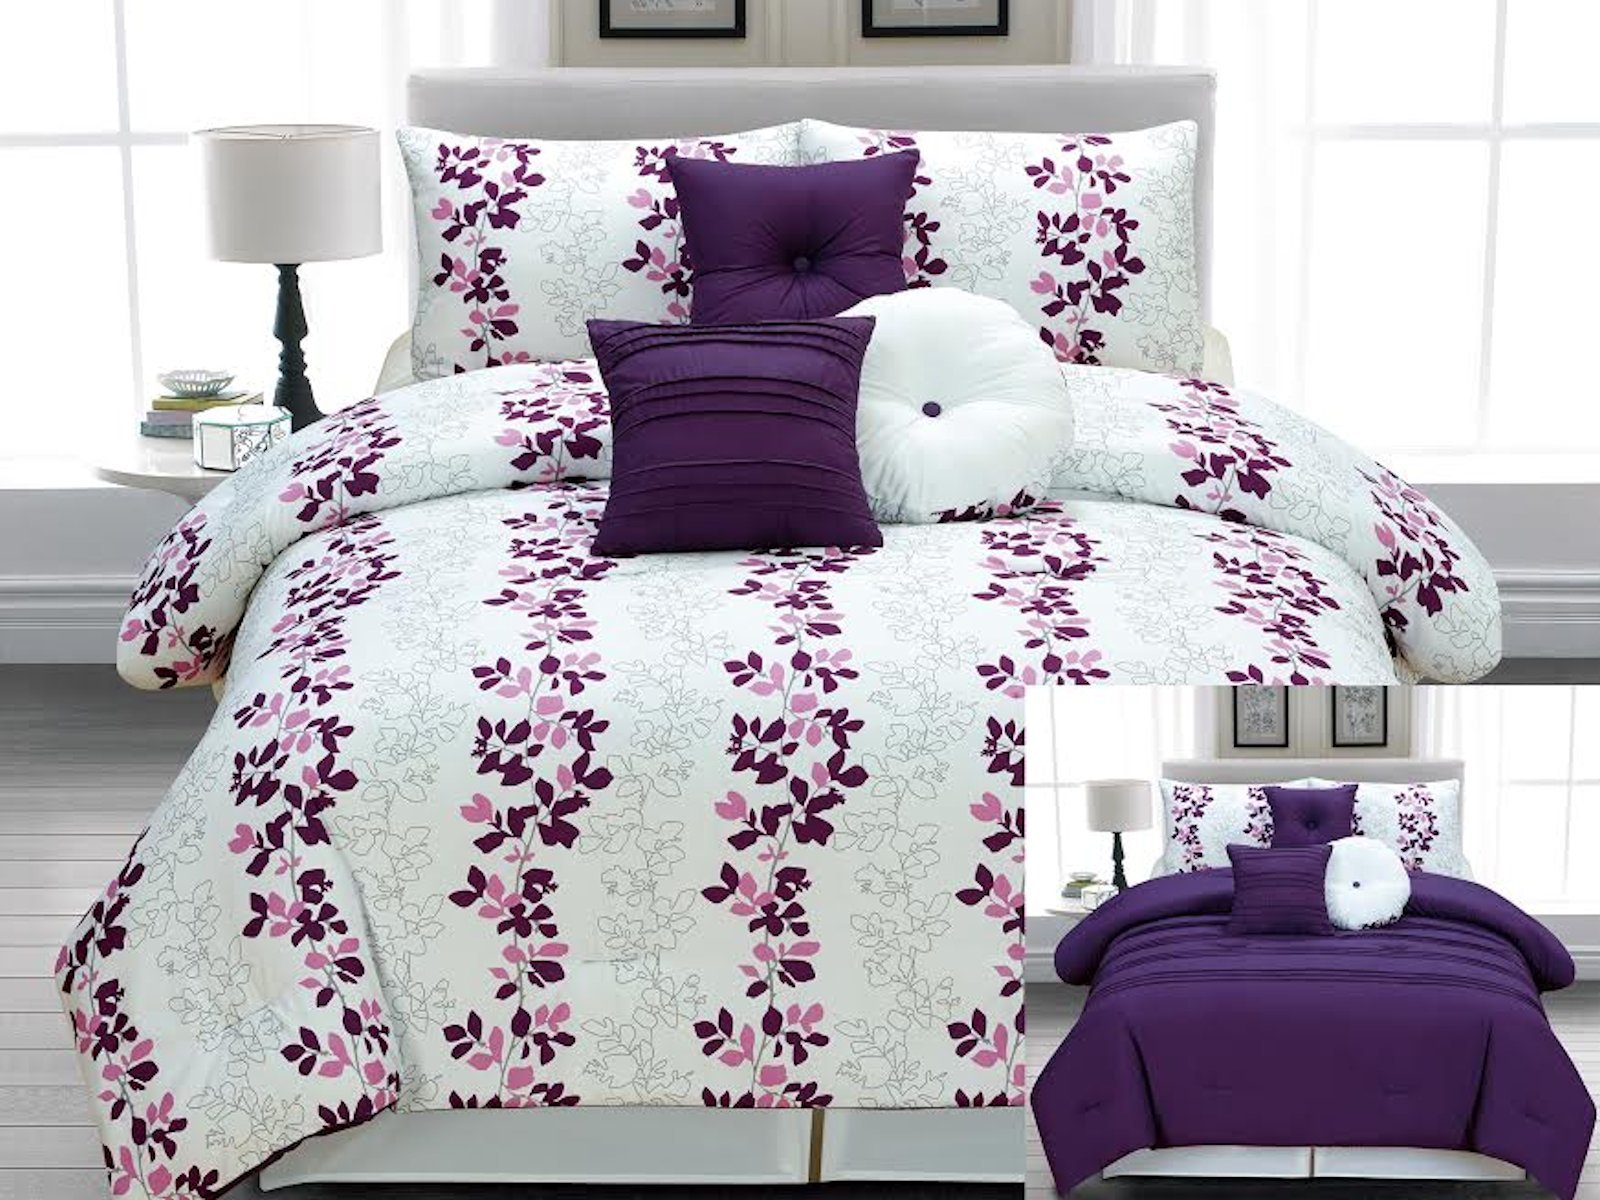 Queen Bedspreads | Queen Quilts | Bed Bath and Beyond Comforter Sets